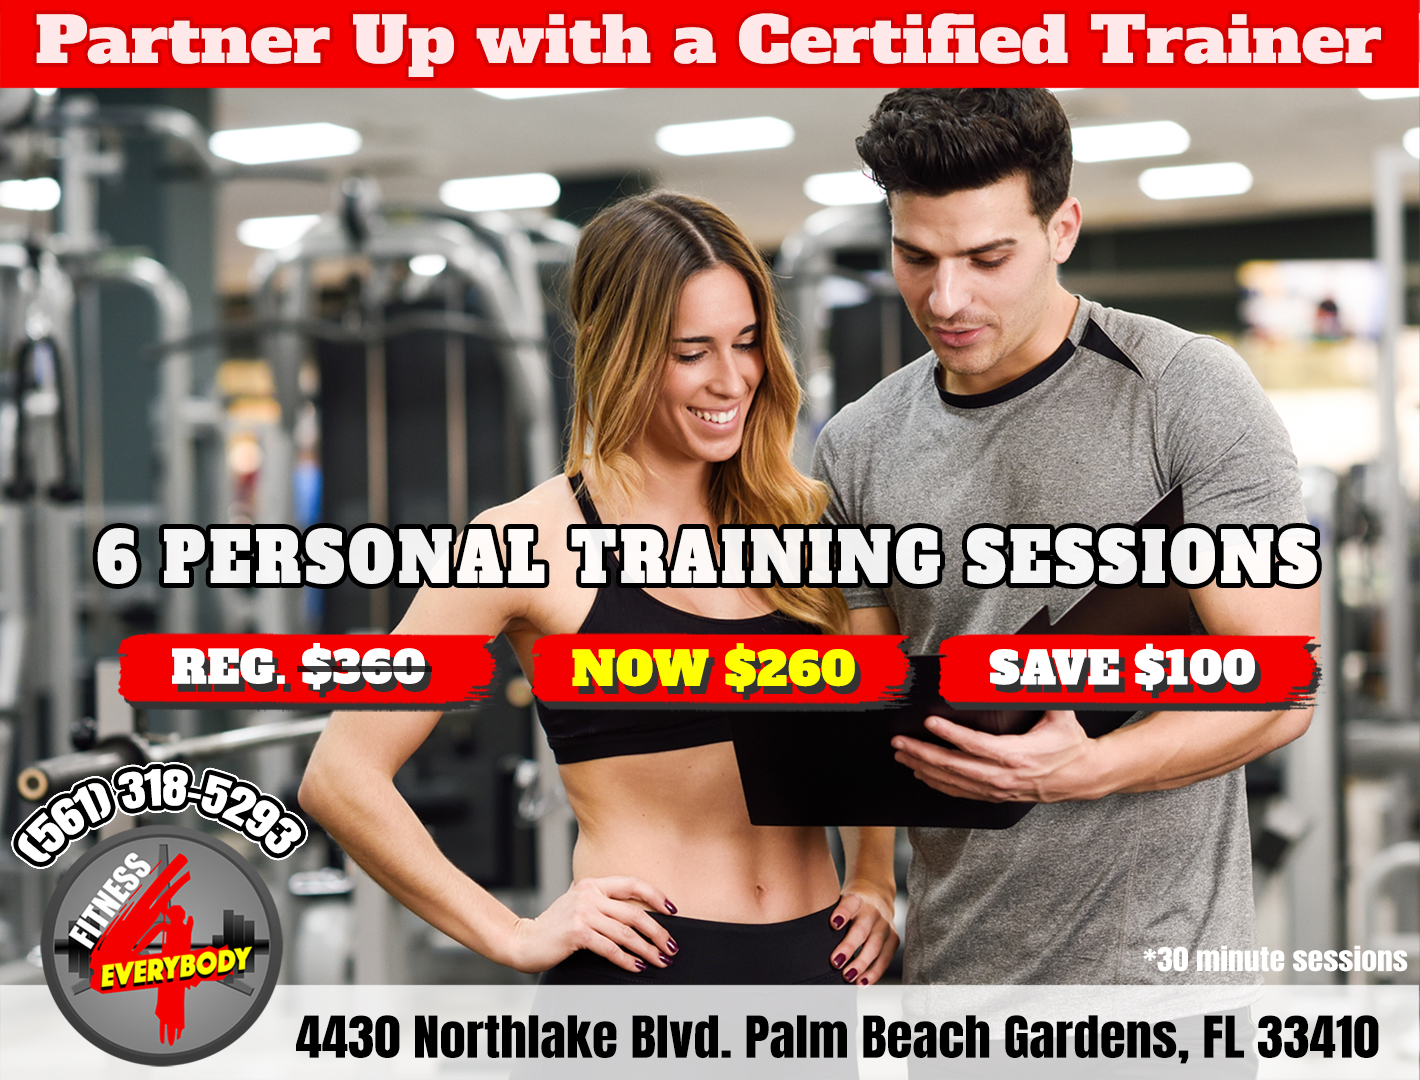 Fitness 4 Everybody Personal Training Special